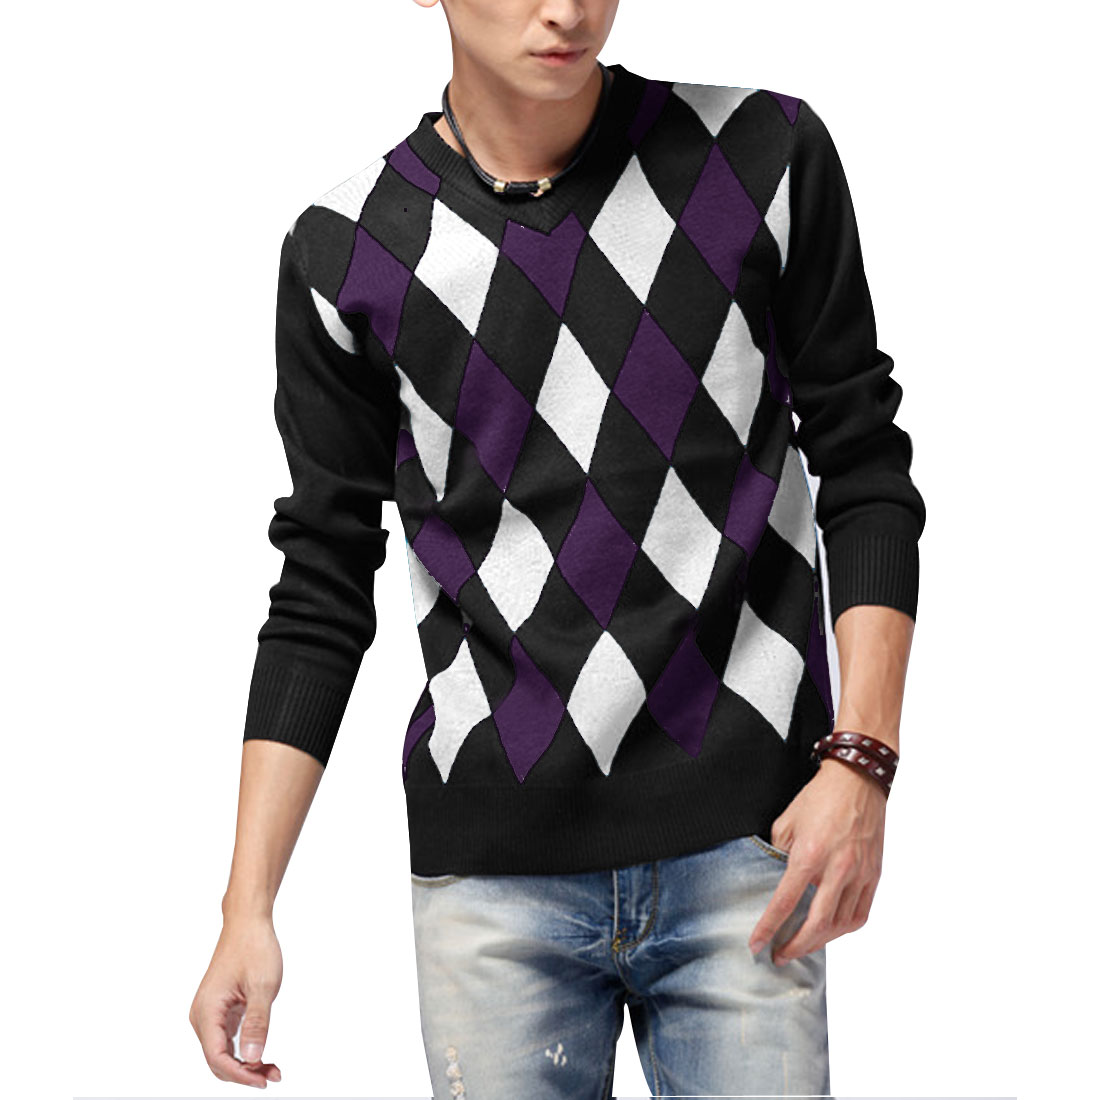 Men Black Purple White Long Sleeve Stretch Argyle Ribbing Hem Knit Shirt S